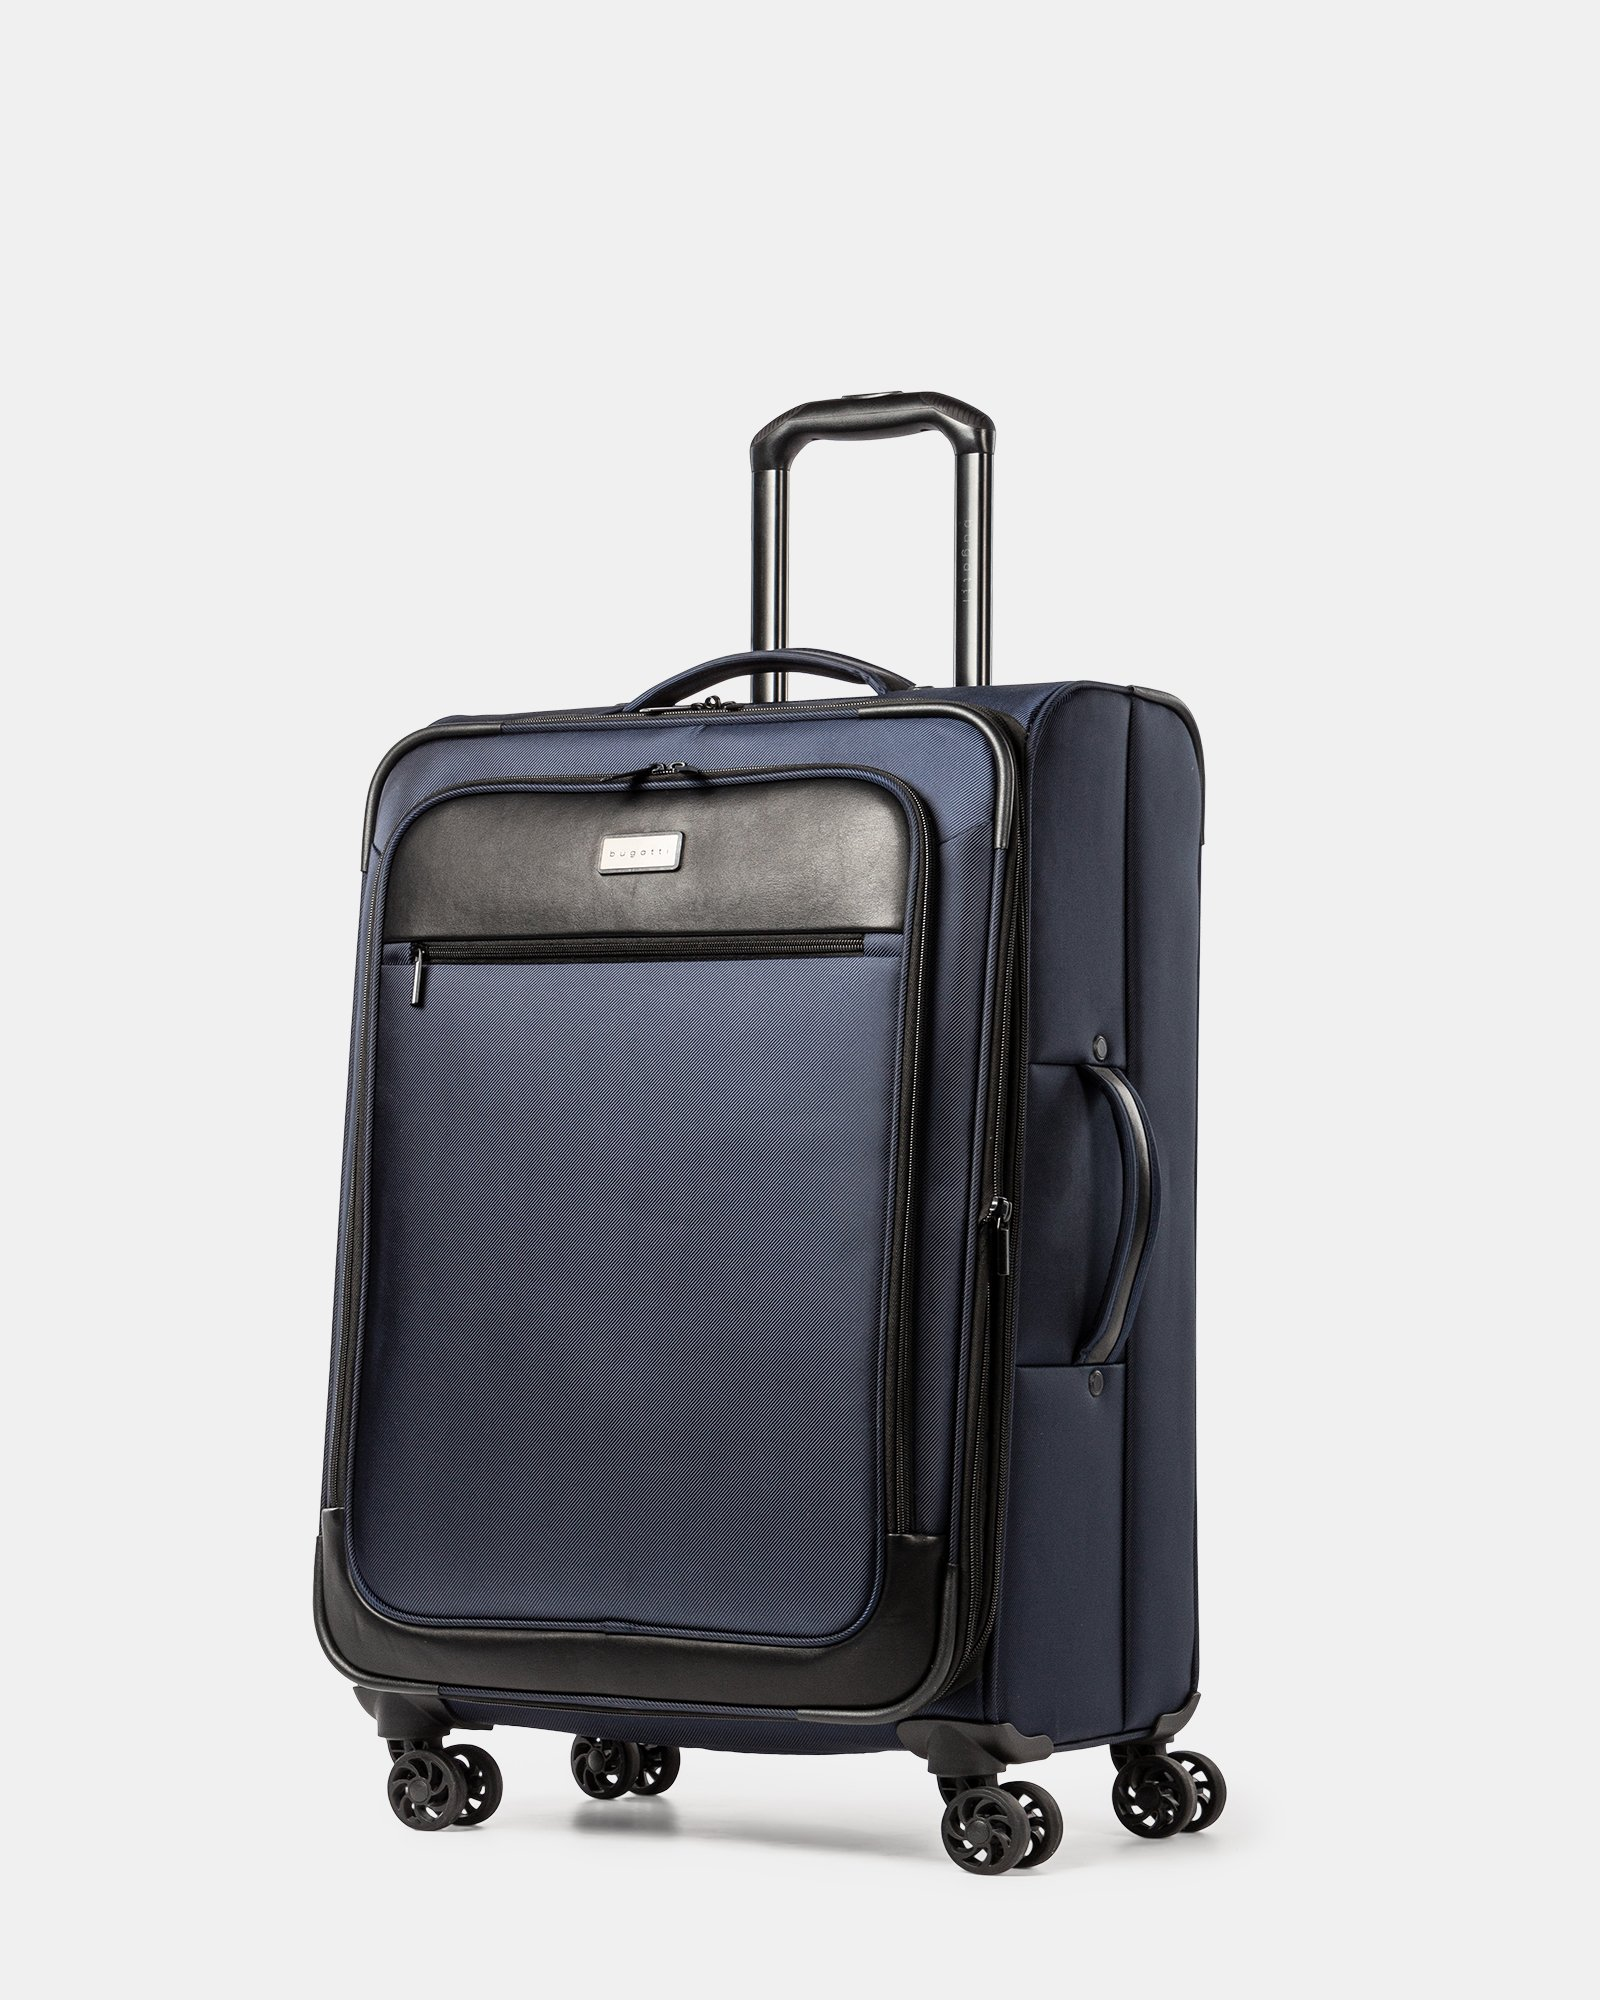 Boston - Lightweight Softside 24'' Luggage with Zipper-release expansion system - Navy - Bugatti - Zoom